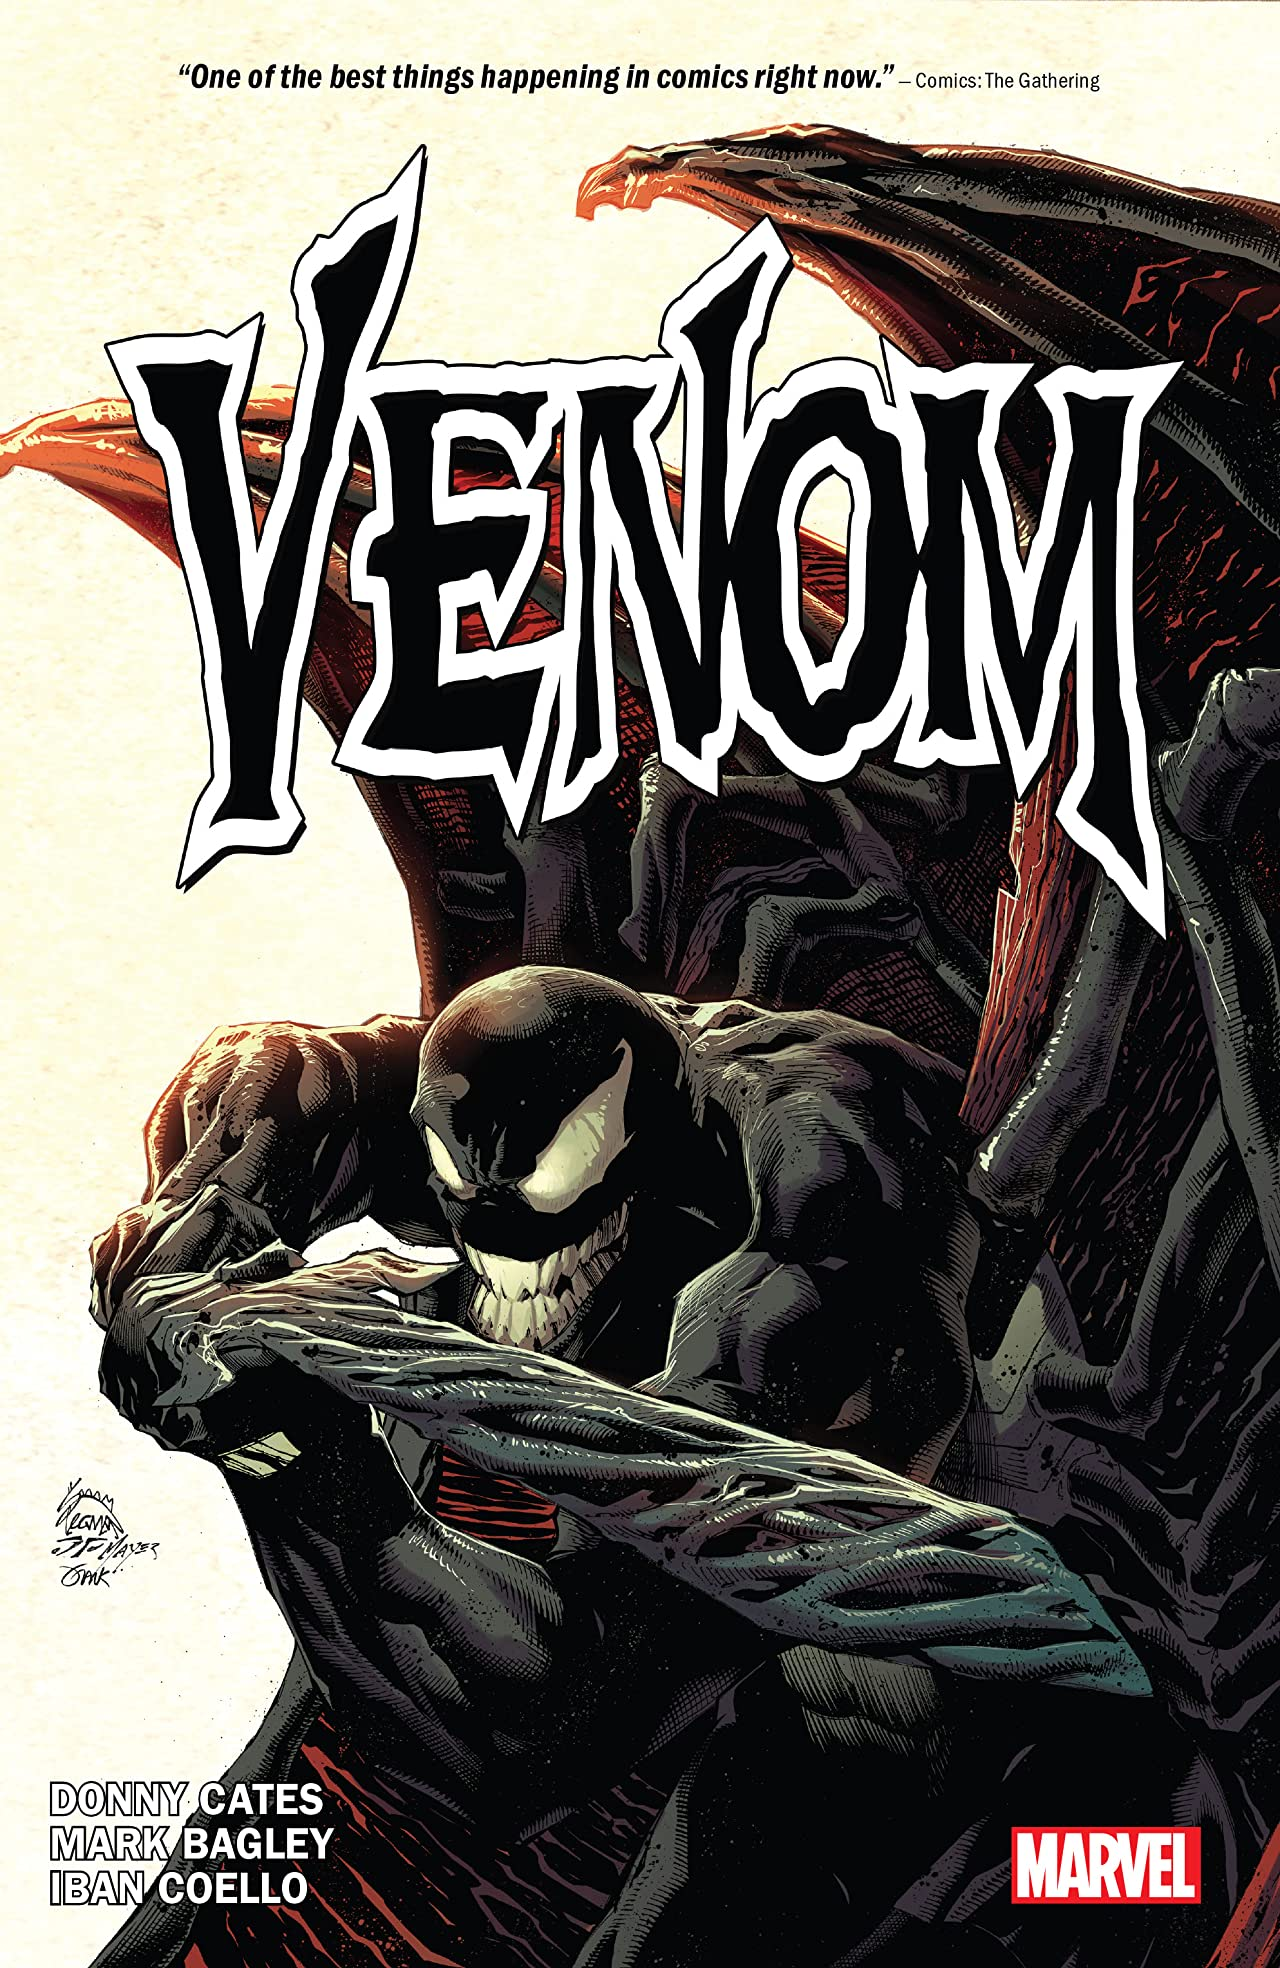 Venom by Donny Cates Vol. 2 (Hardcover)